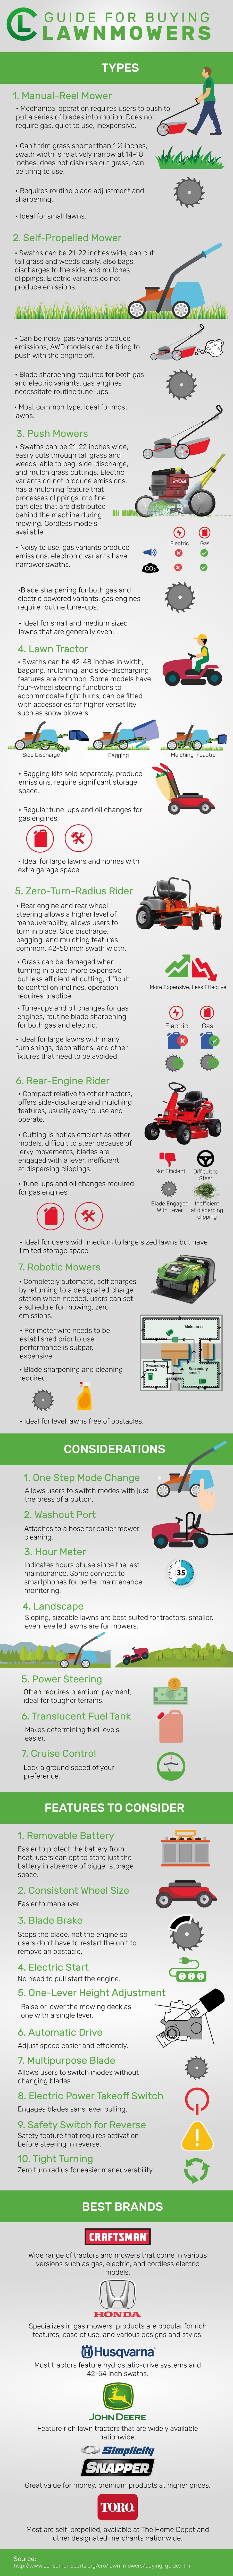 Guide For Buying Lawn Mowers Infographic